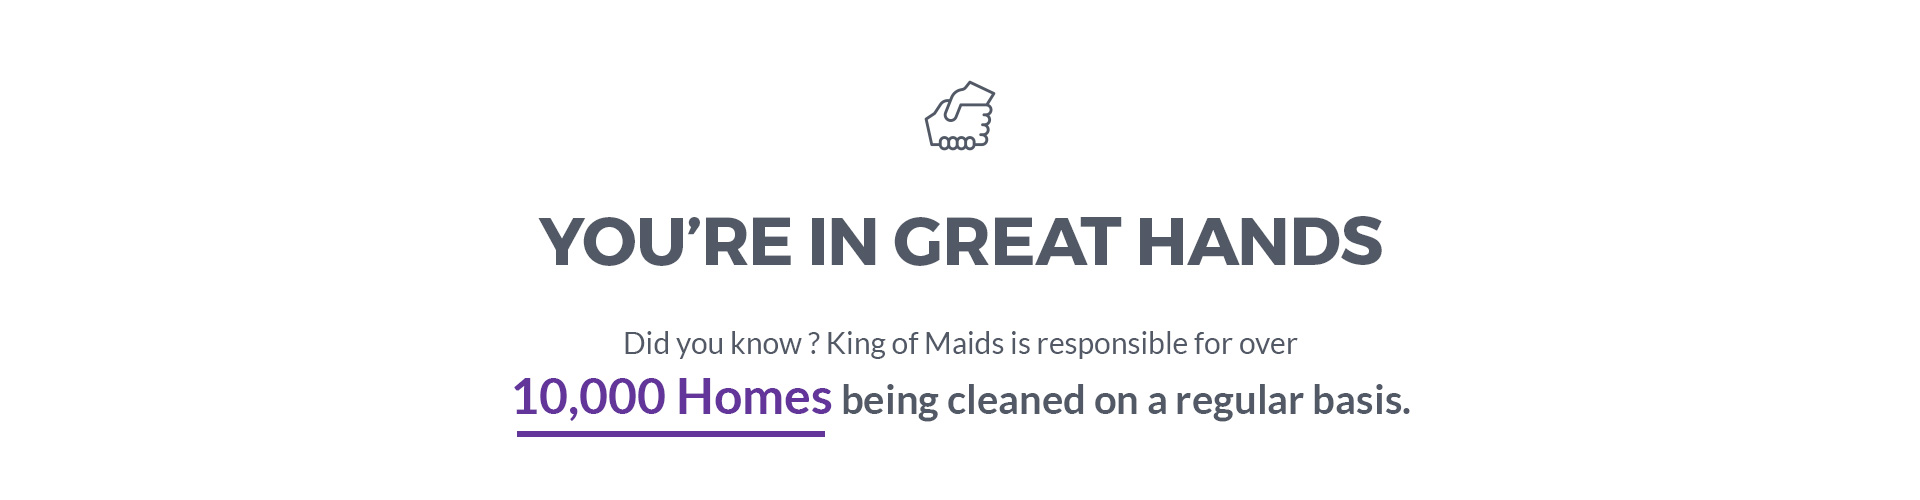 Cleaning Services NYC | King of Maids - View Our Instant Pricing!